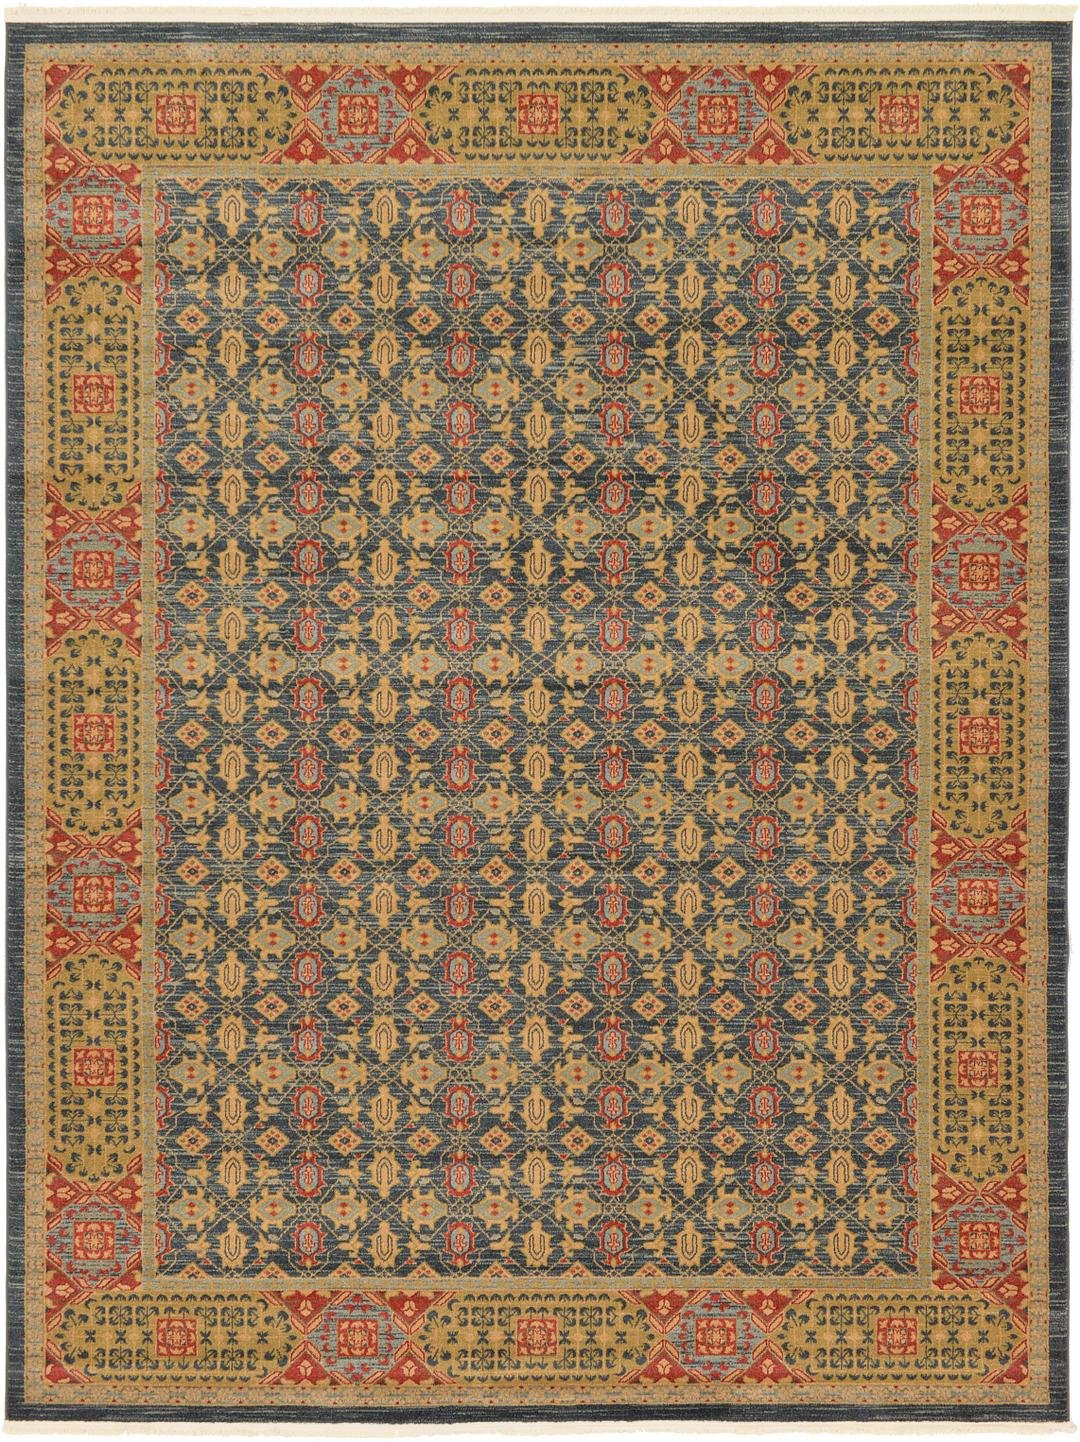 Persian rug Turkish area rug carpet deal sale liquidation 9 x 12